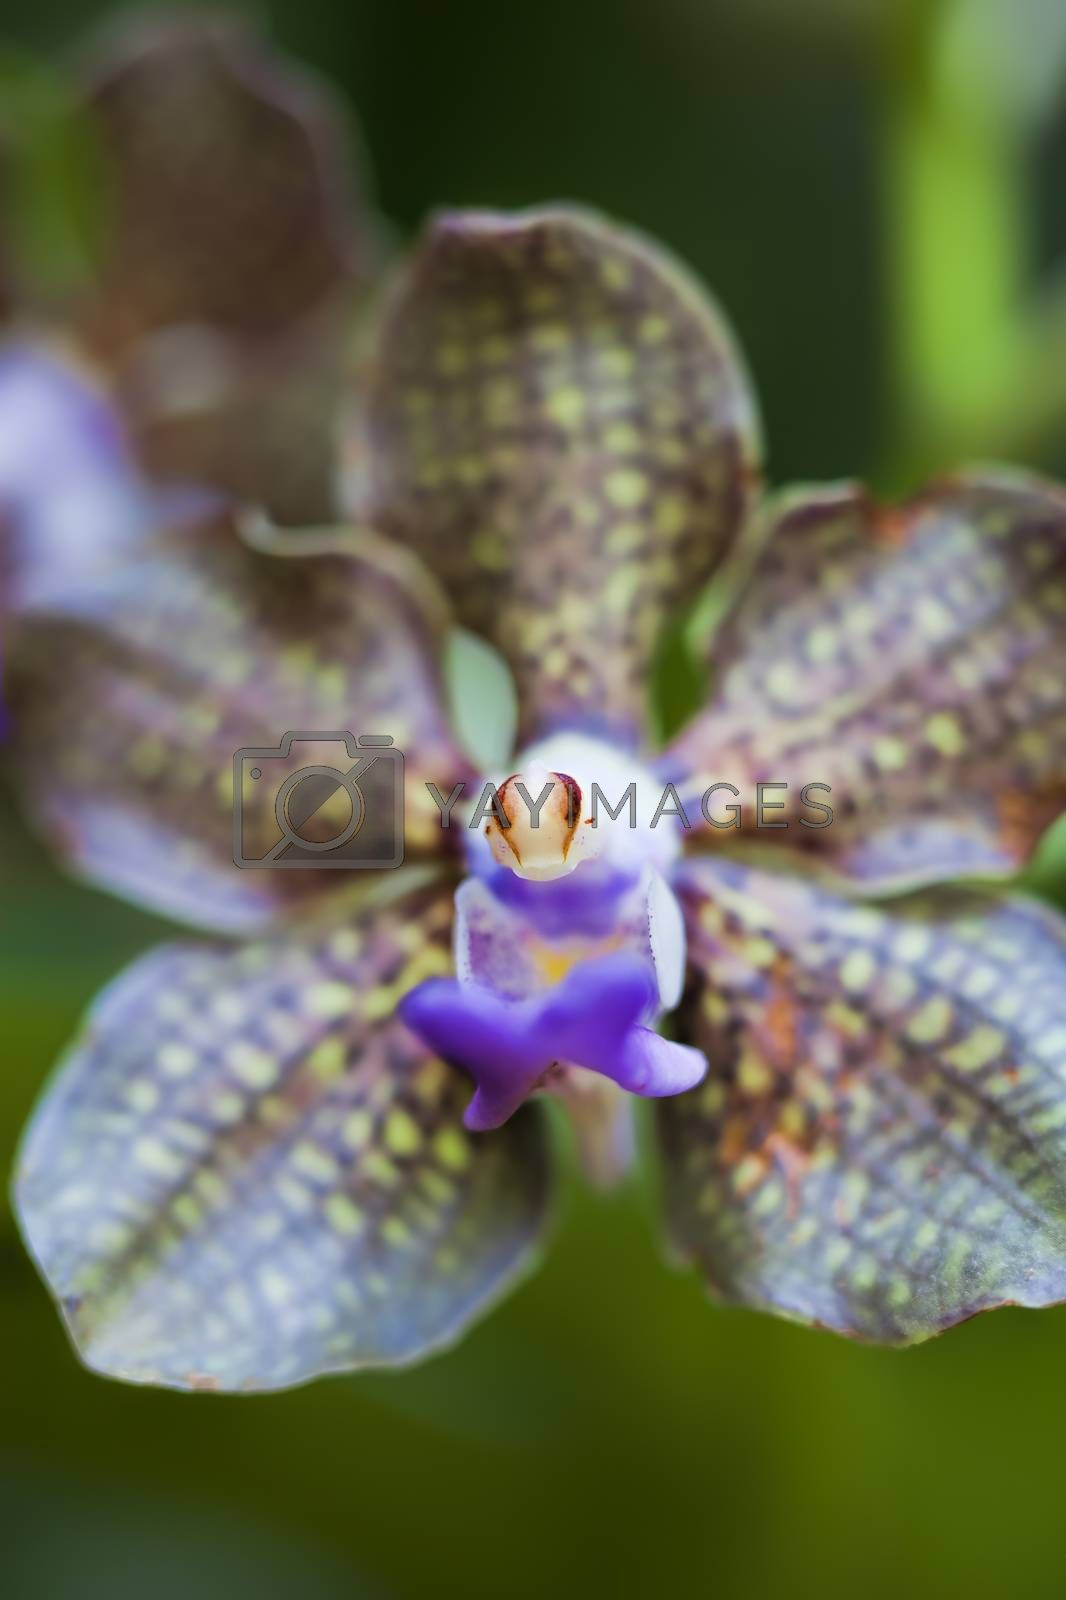 Close-up of a blooming orchid flower looking like an alien